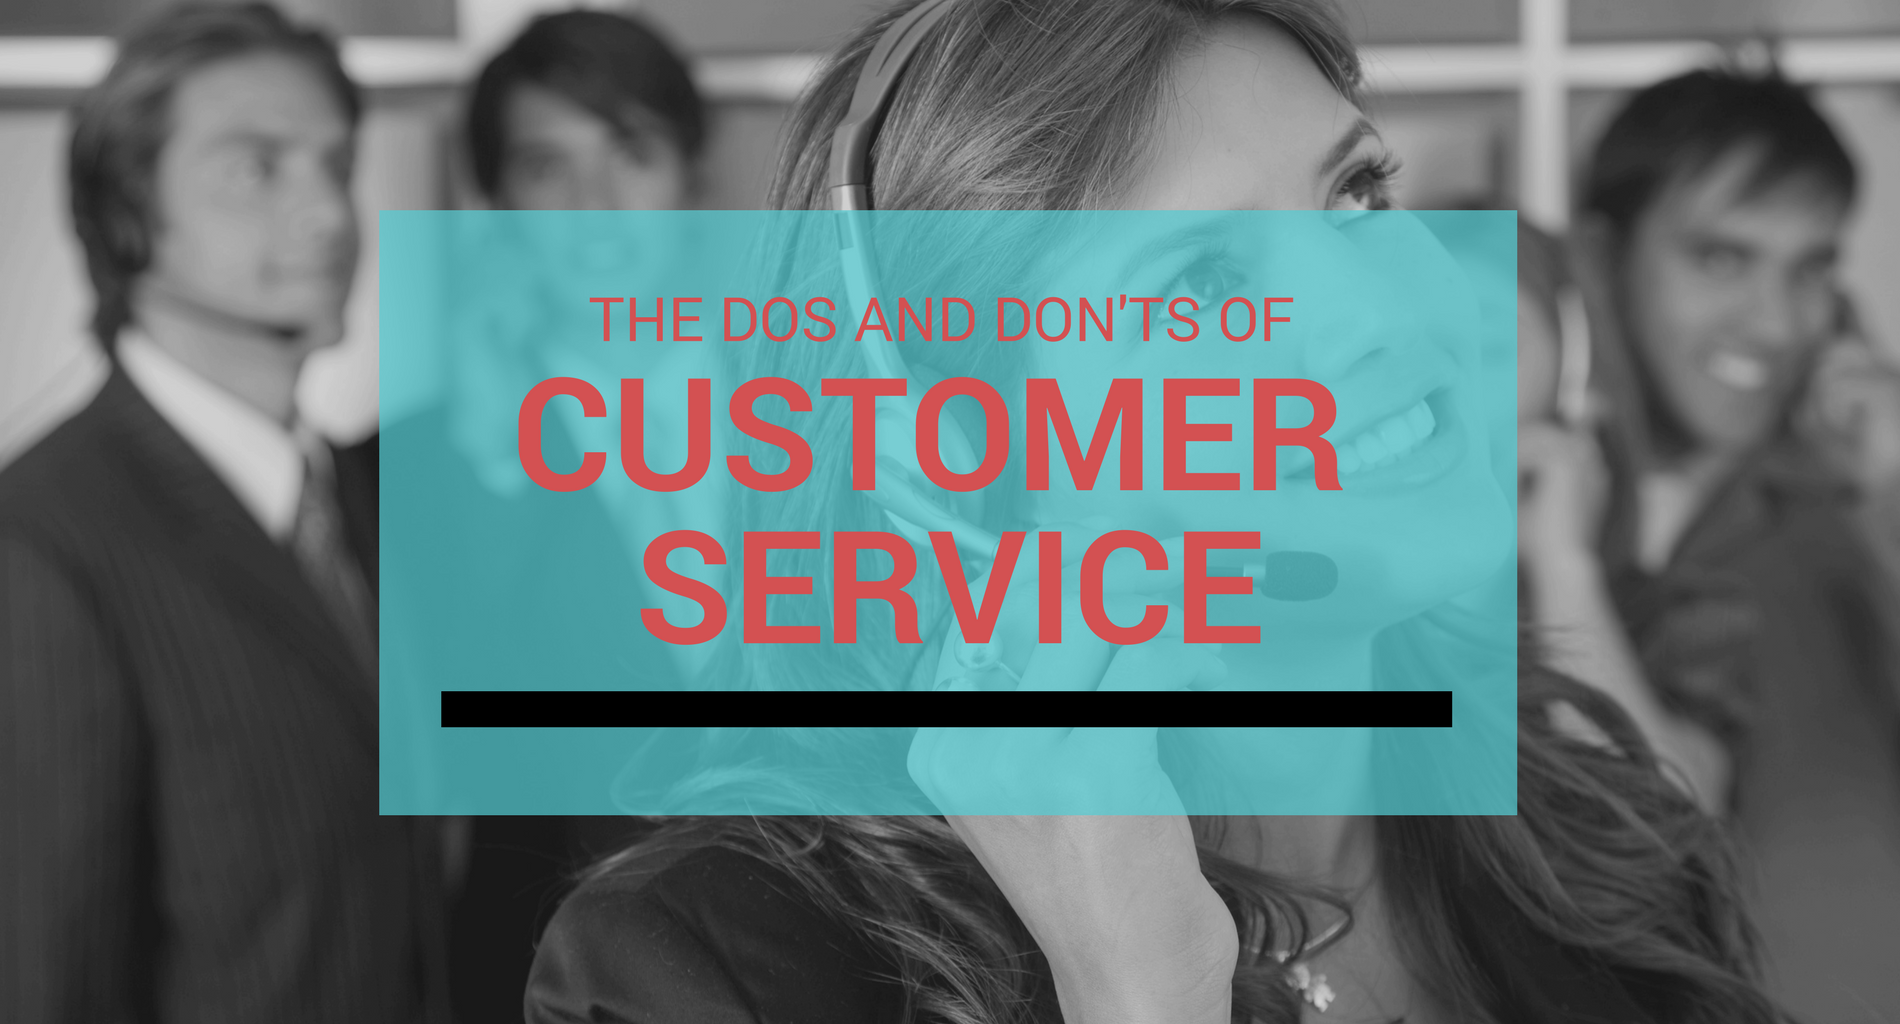 The Dos and Don'ts of Customer Service